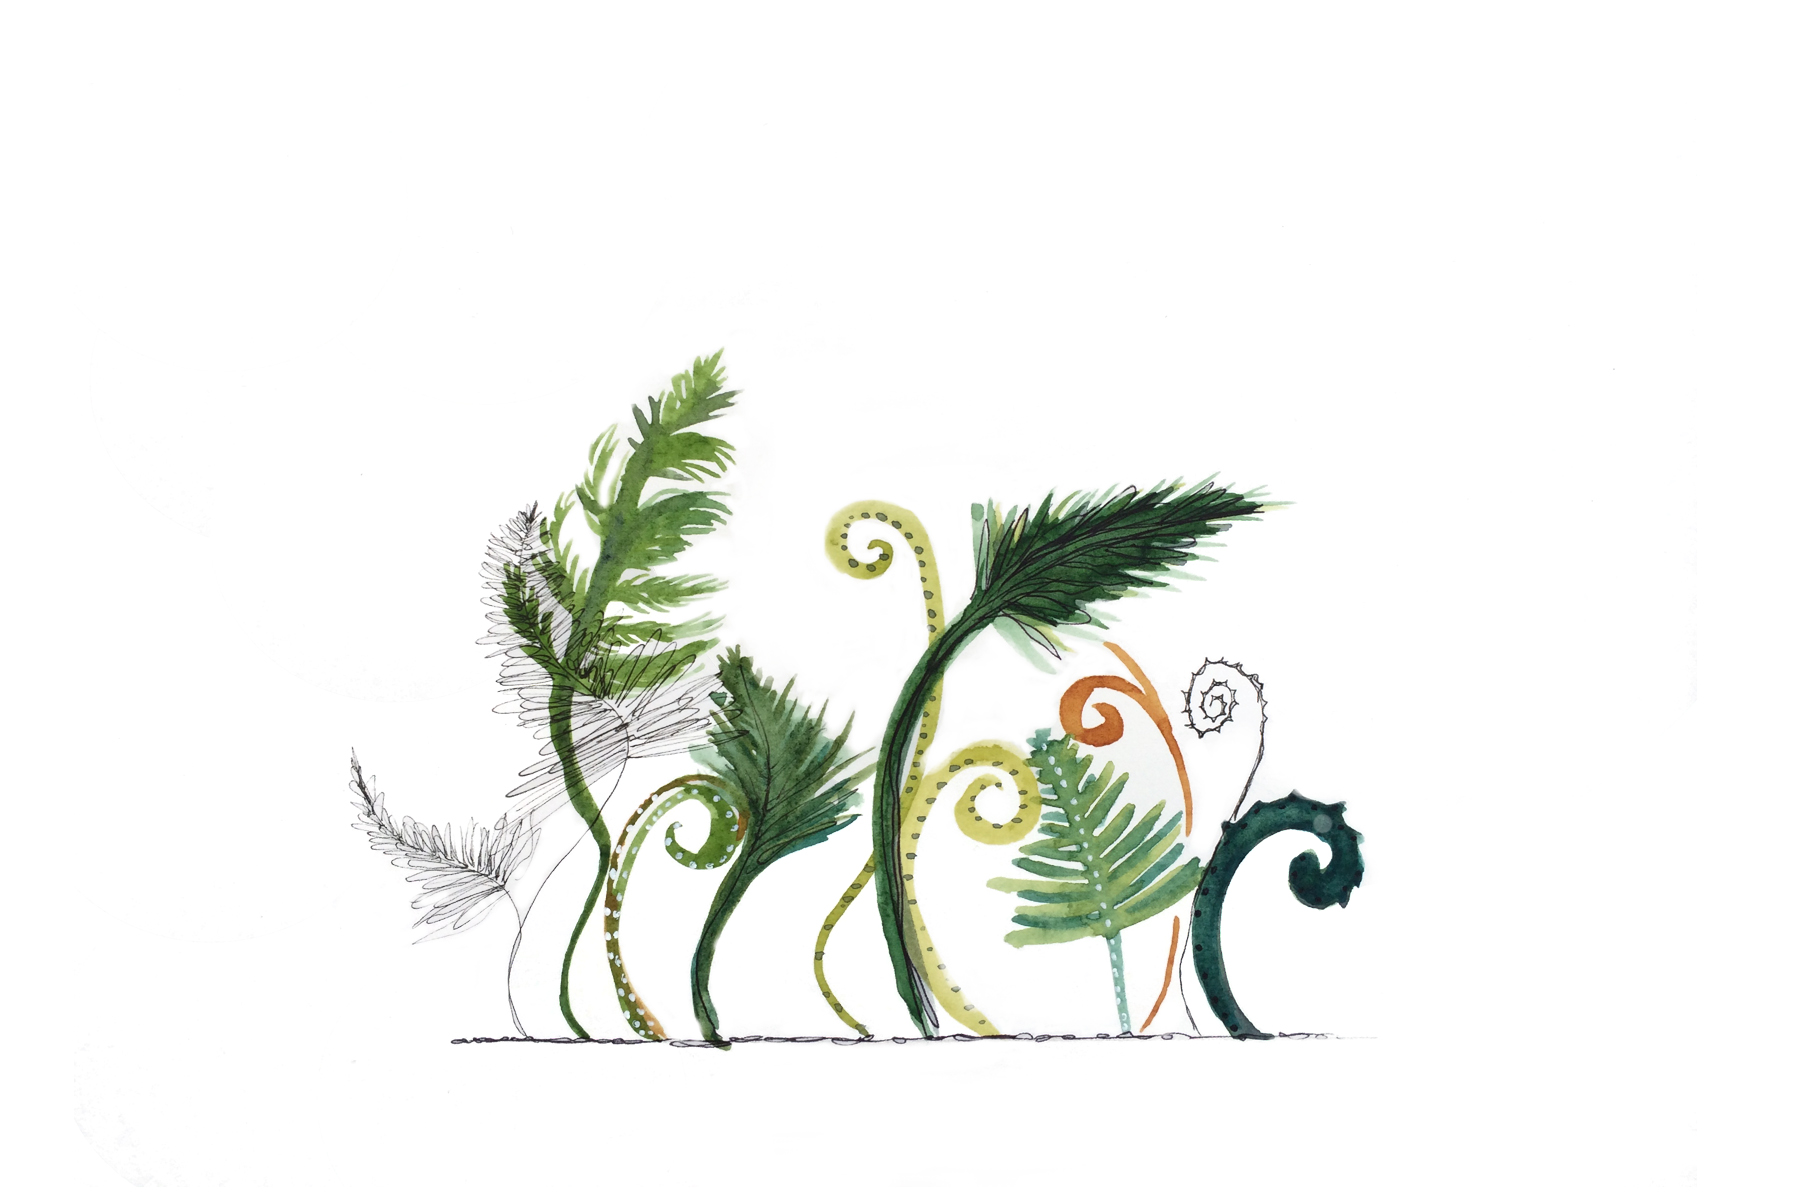 Fern Forrest, Watercolor and Ink, 2015